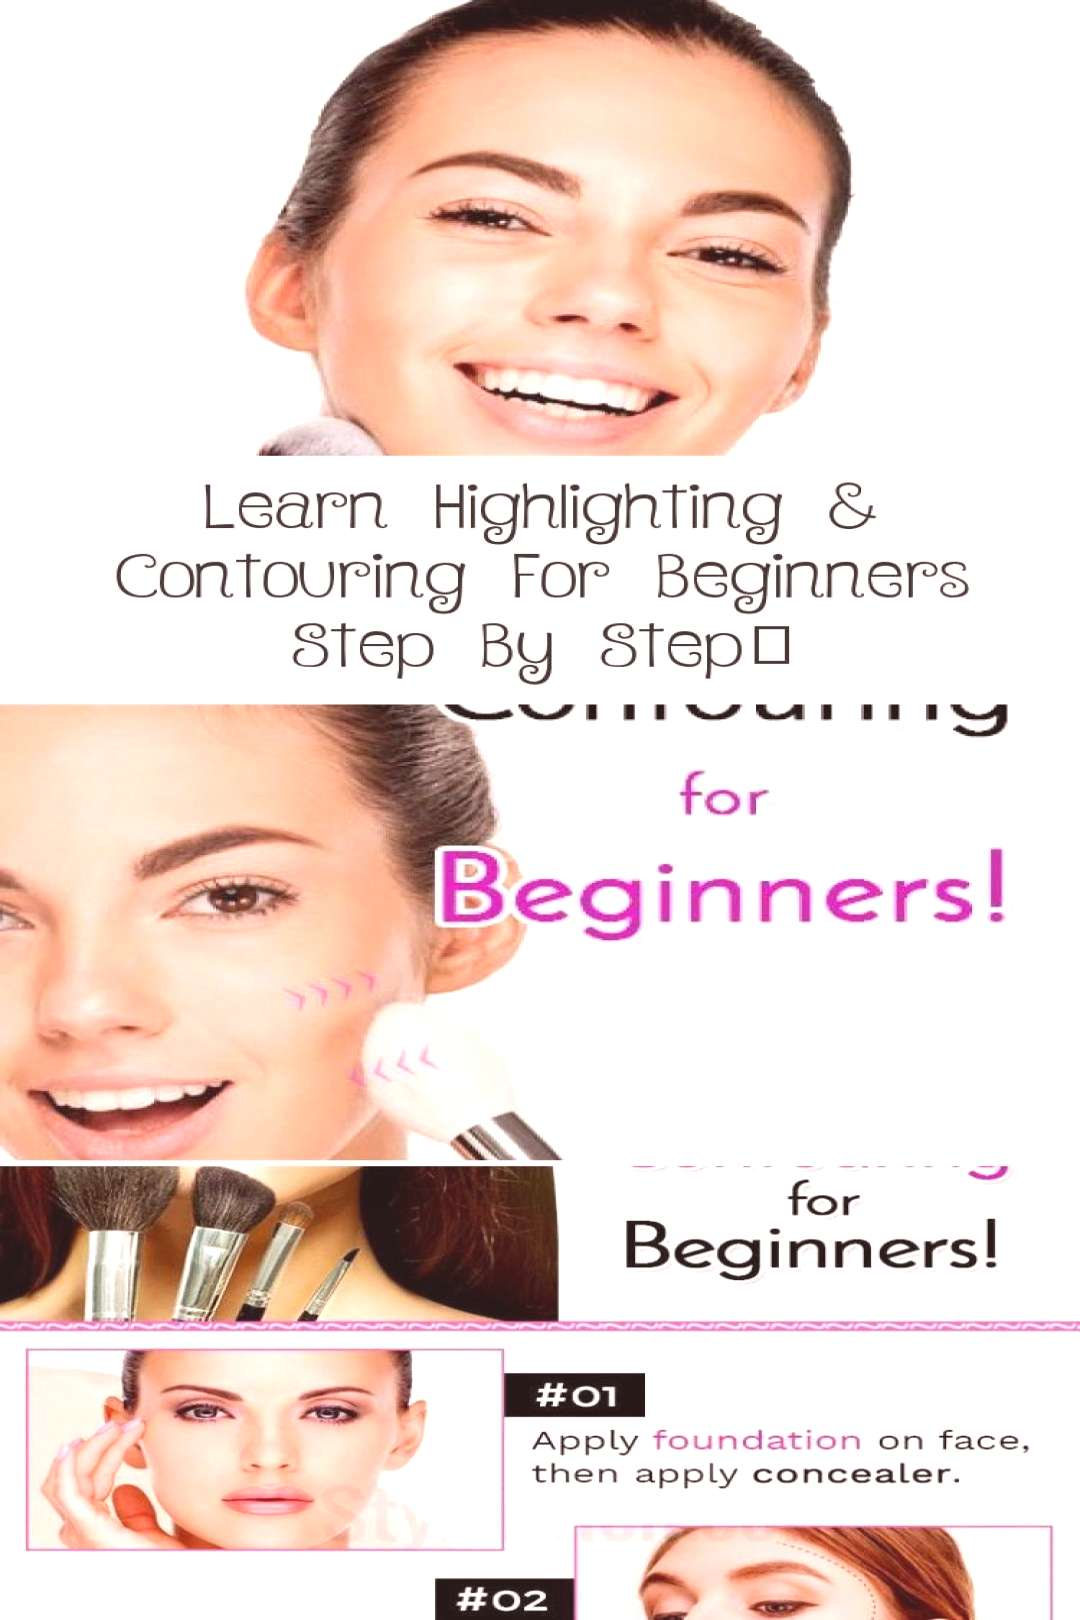 Learn step-by-step highlighting and contouring for beginners ... - MAKEUP - Hig ... , Learn step-b